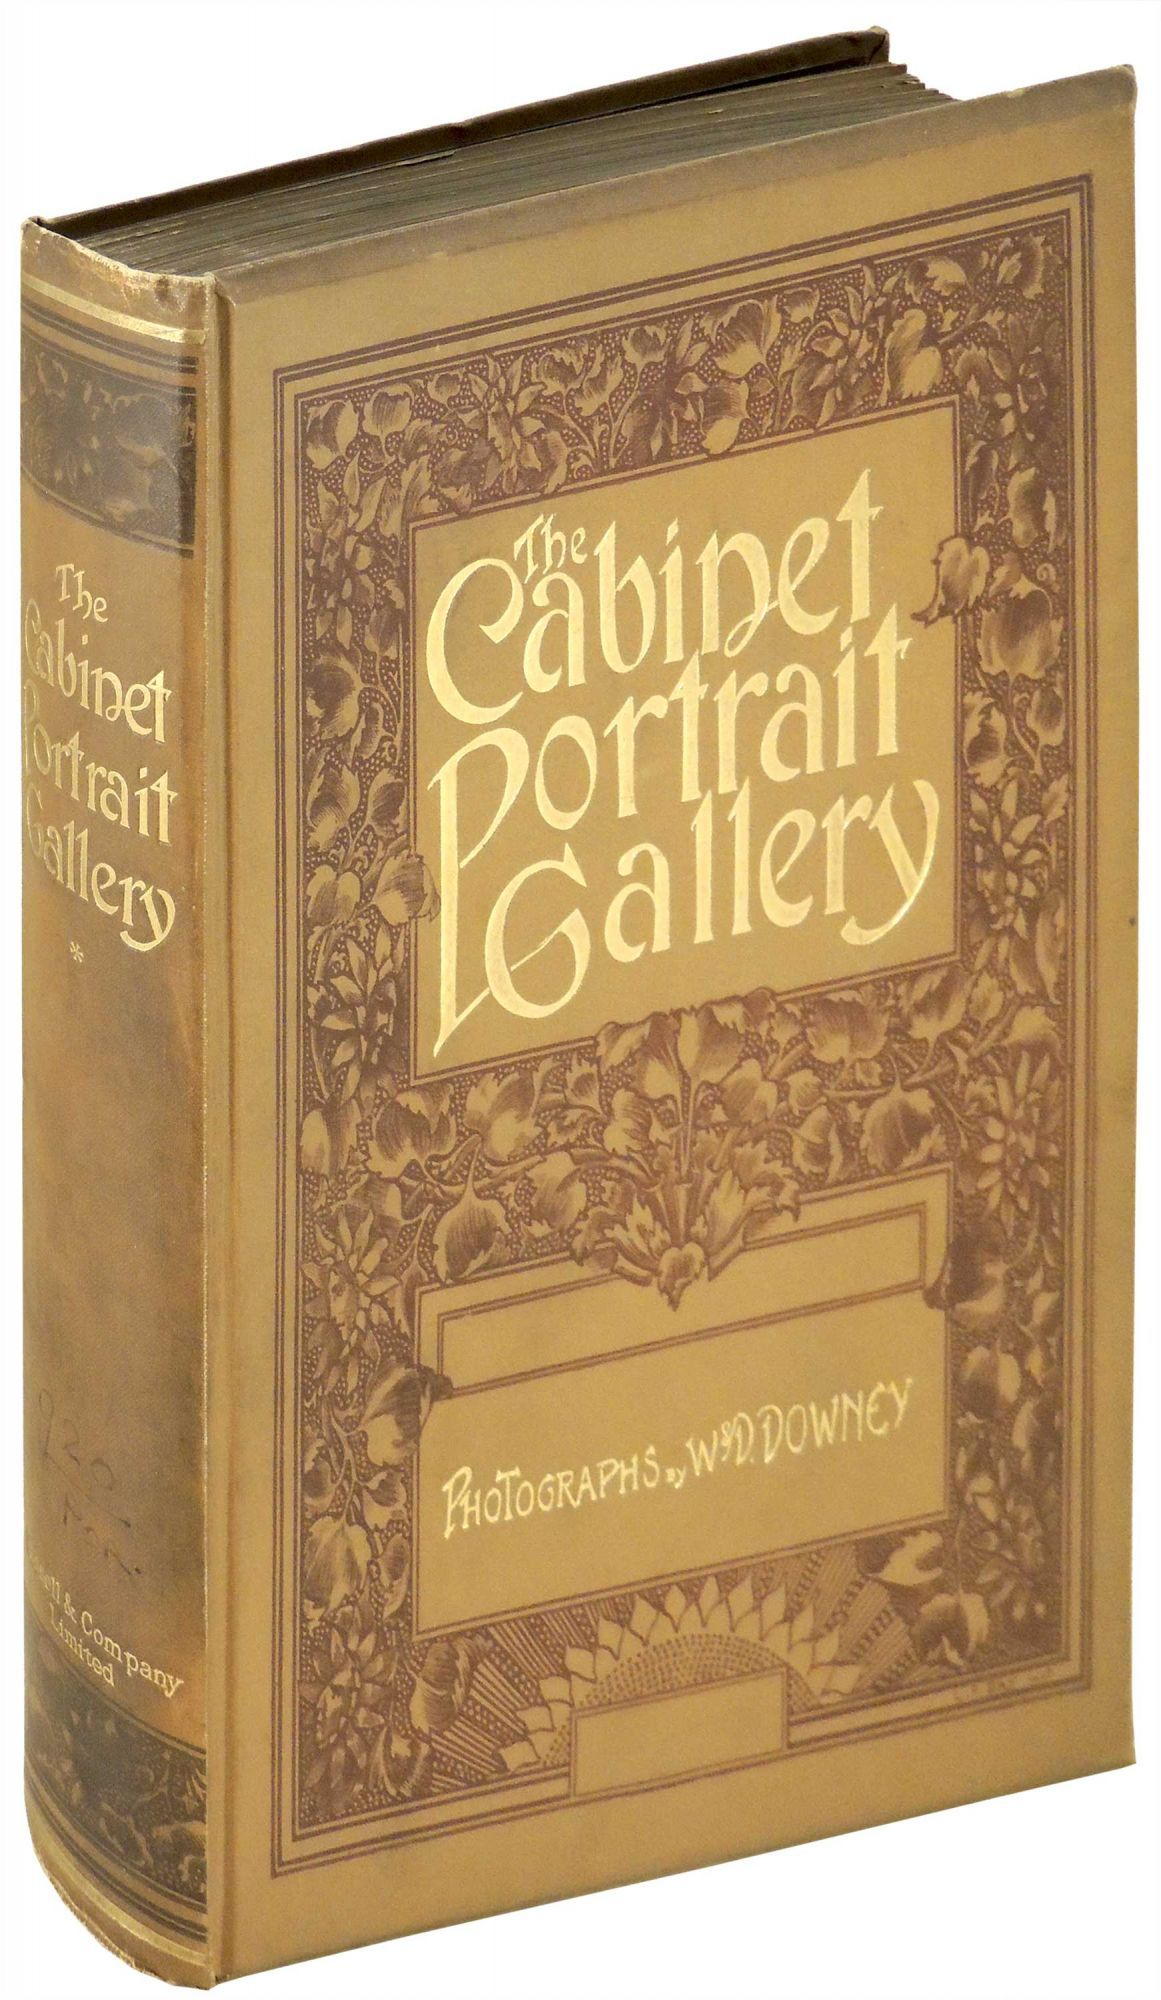 Cabinet Portrait Gallery